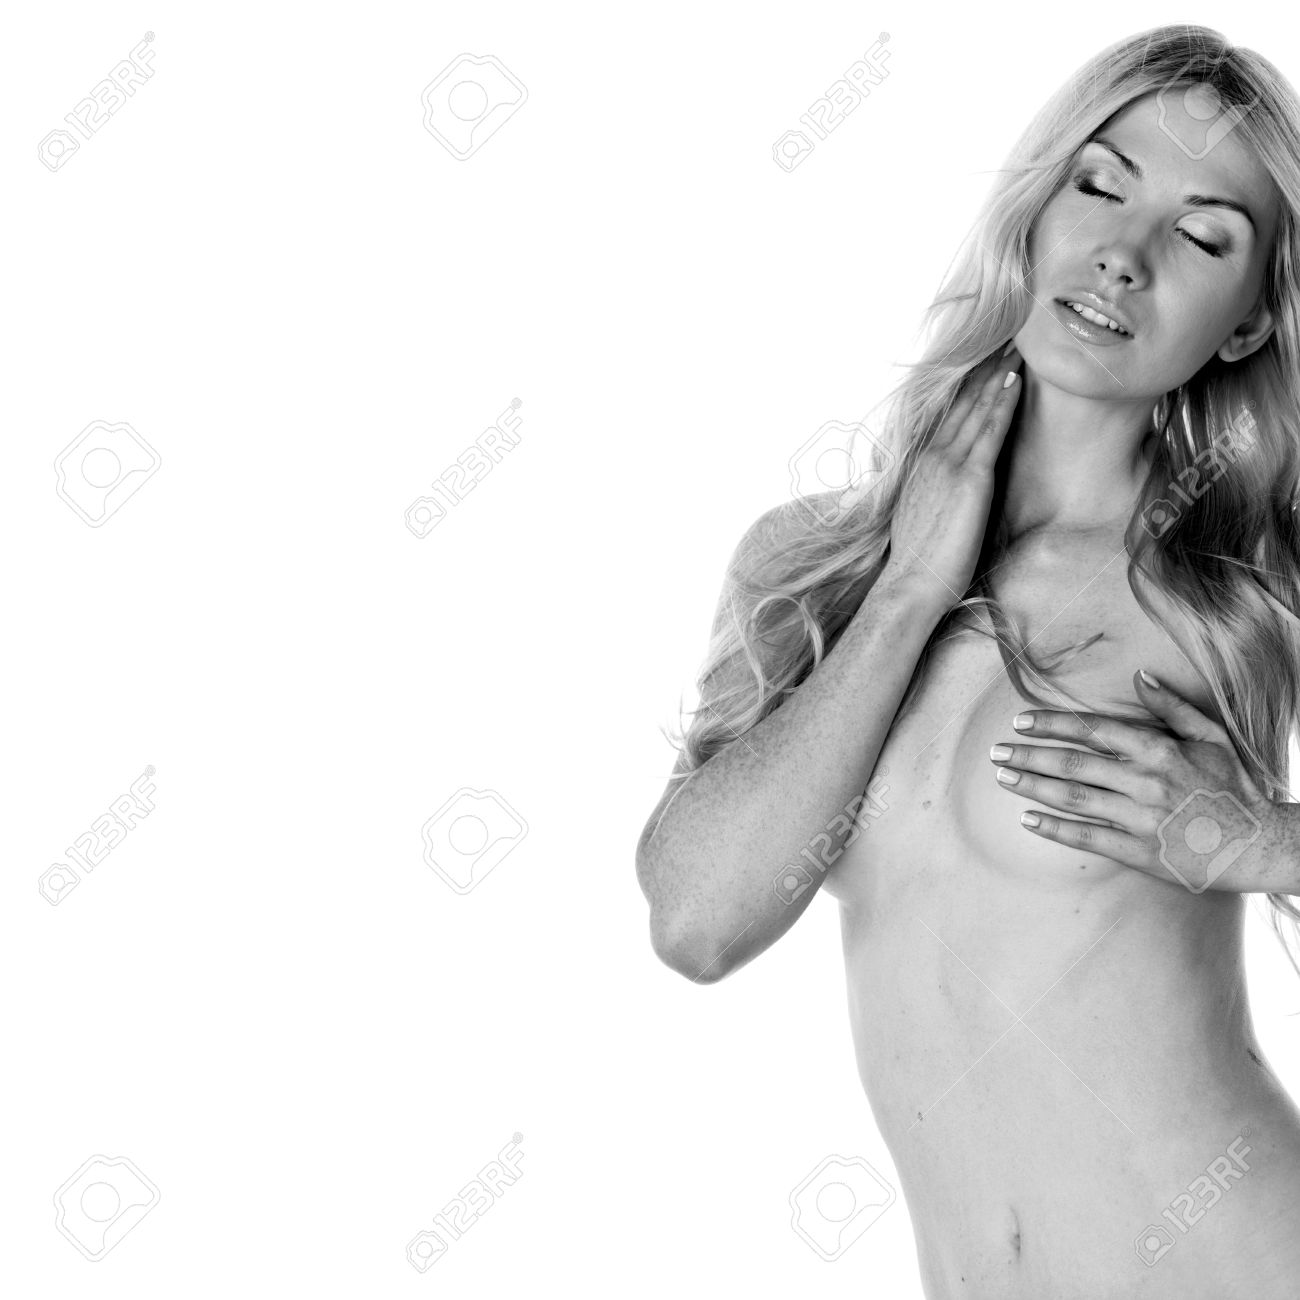 nude woman isolated on white BW portrait Stock Photo - 10705596